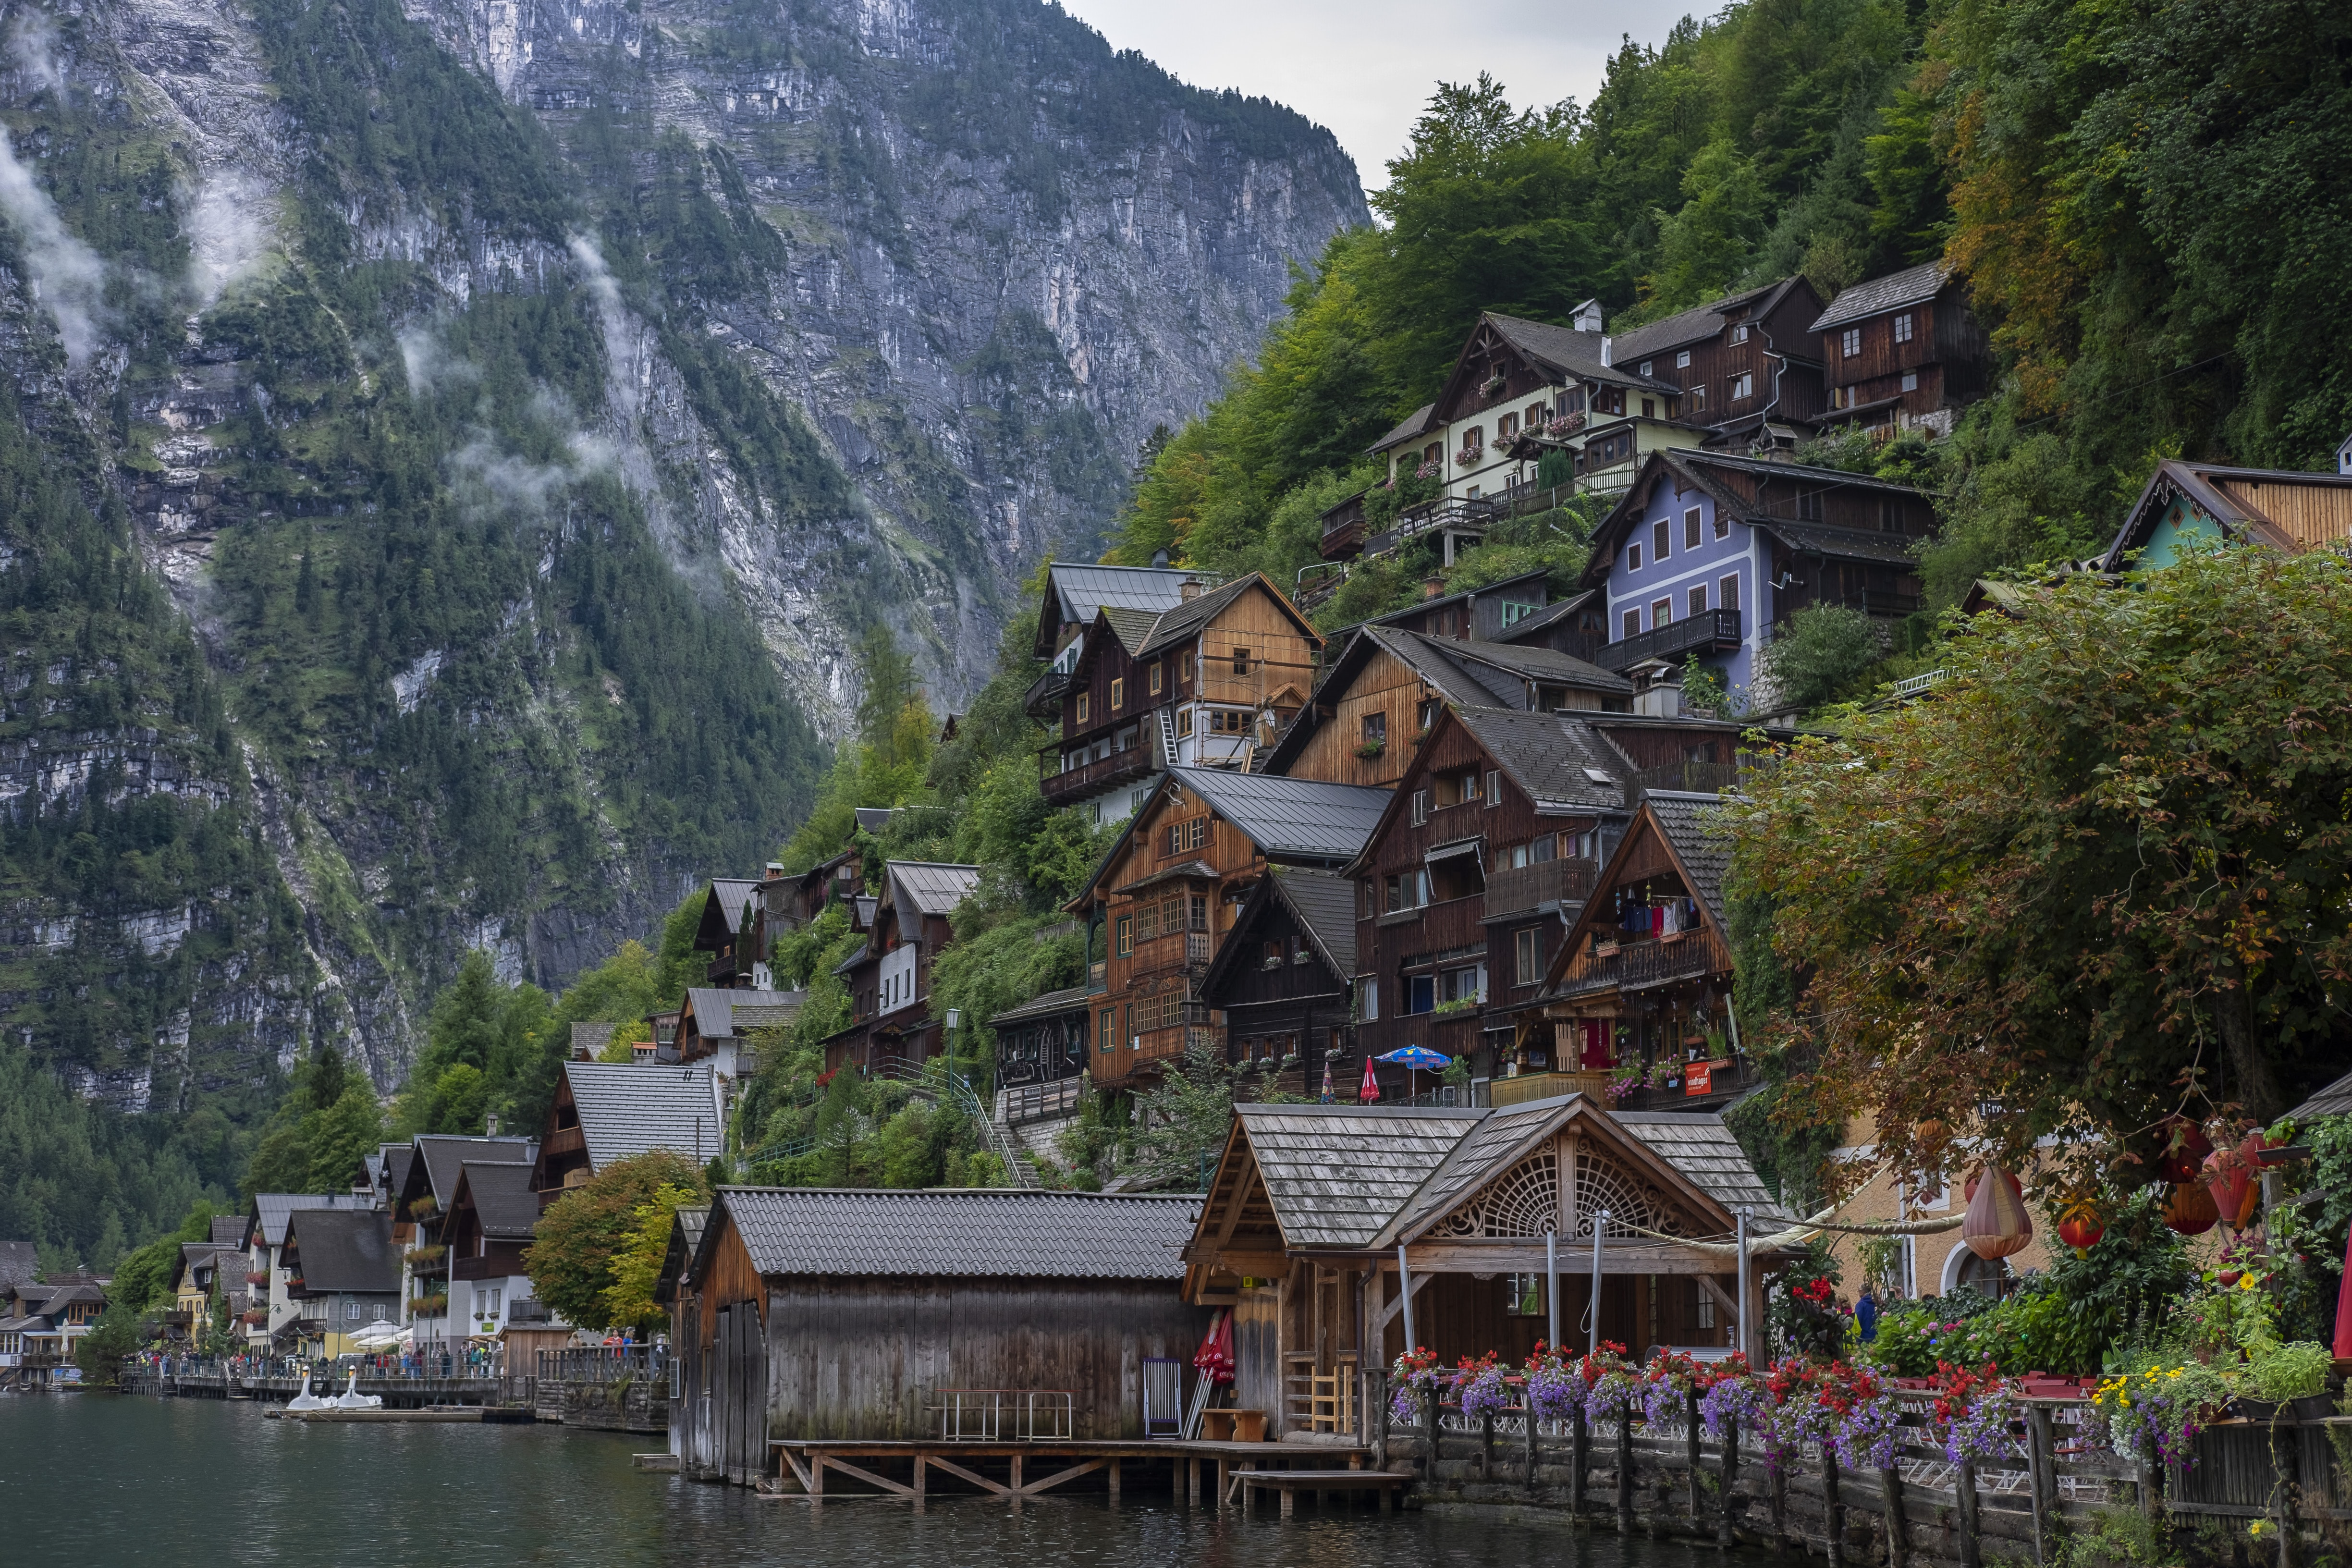 brown wooden village beside of body of water